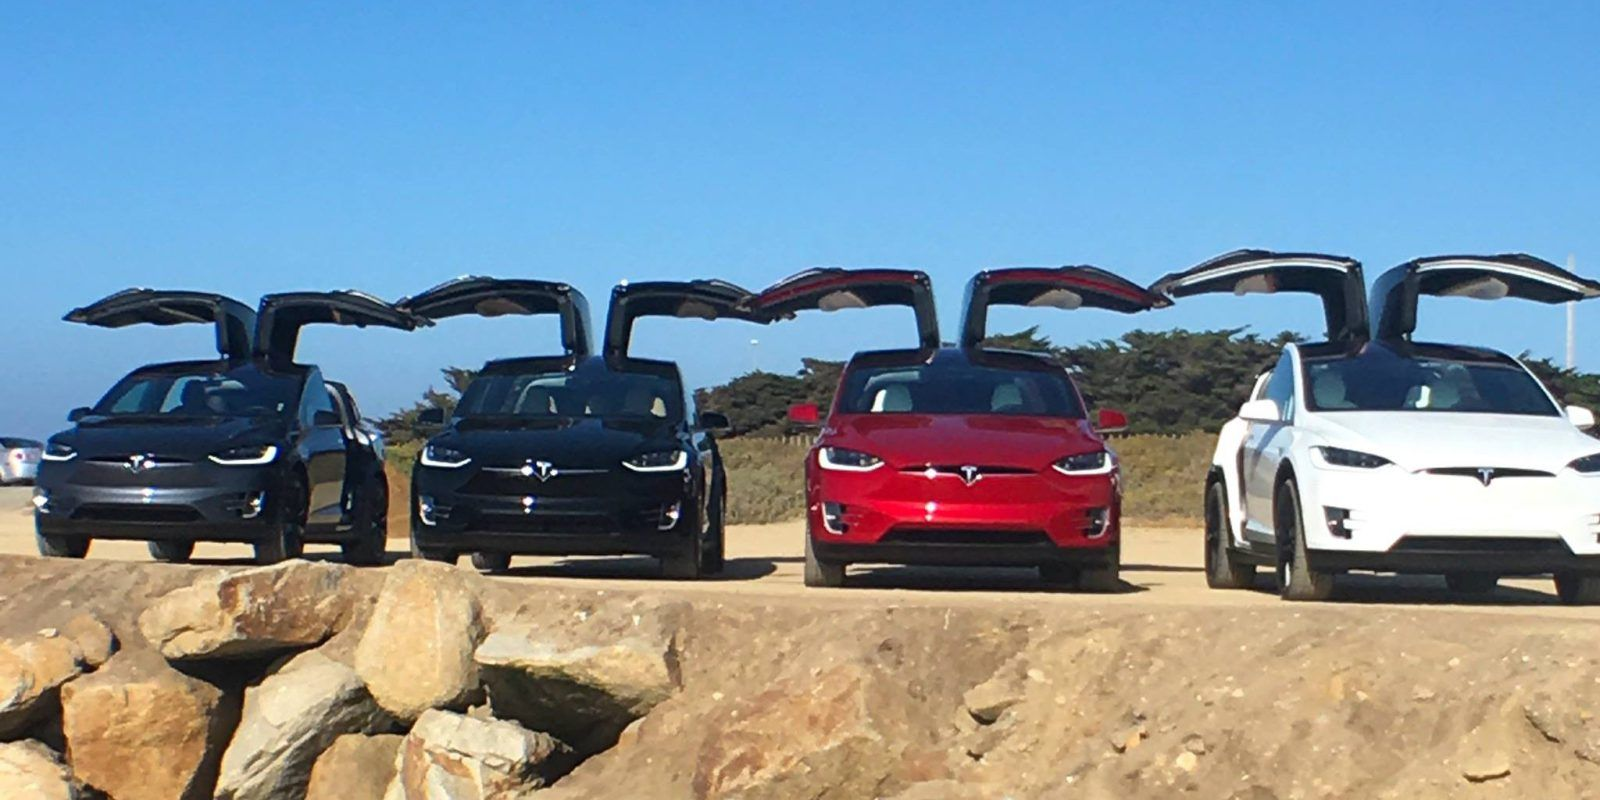 Tesla announced last week that it delivered 22,200